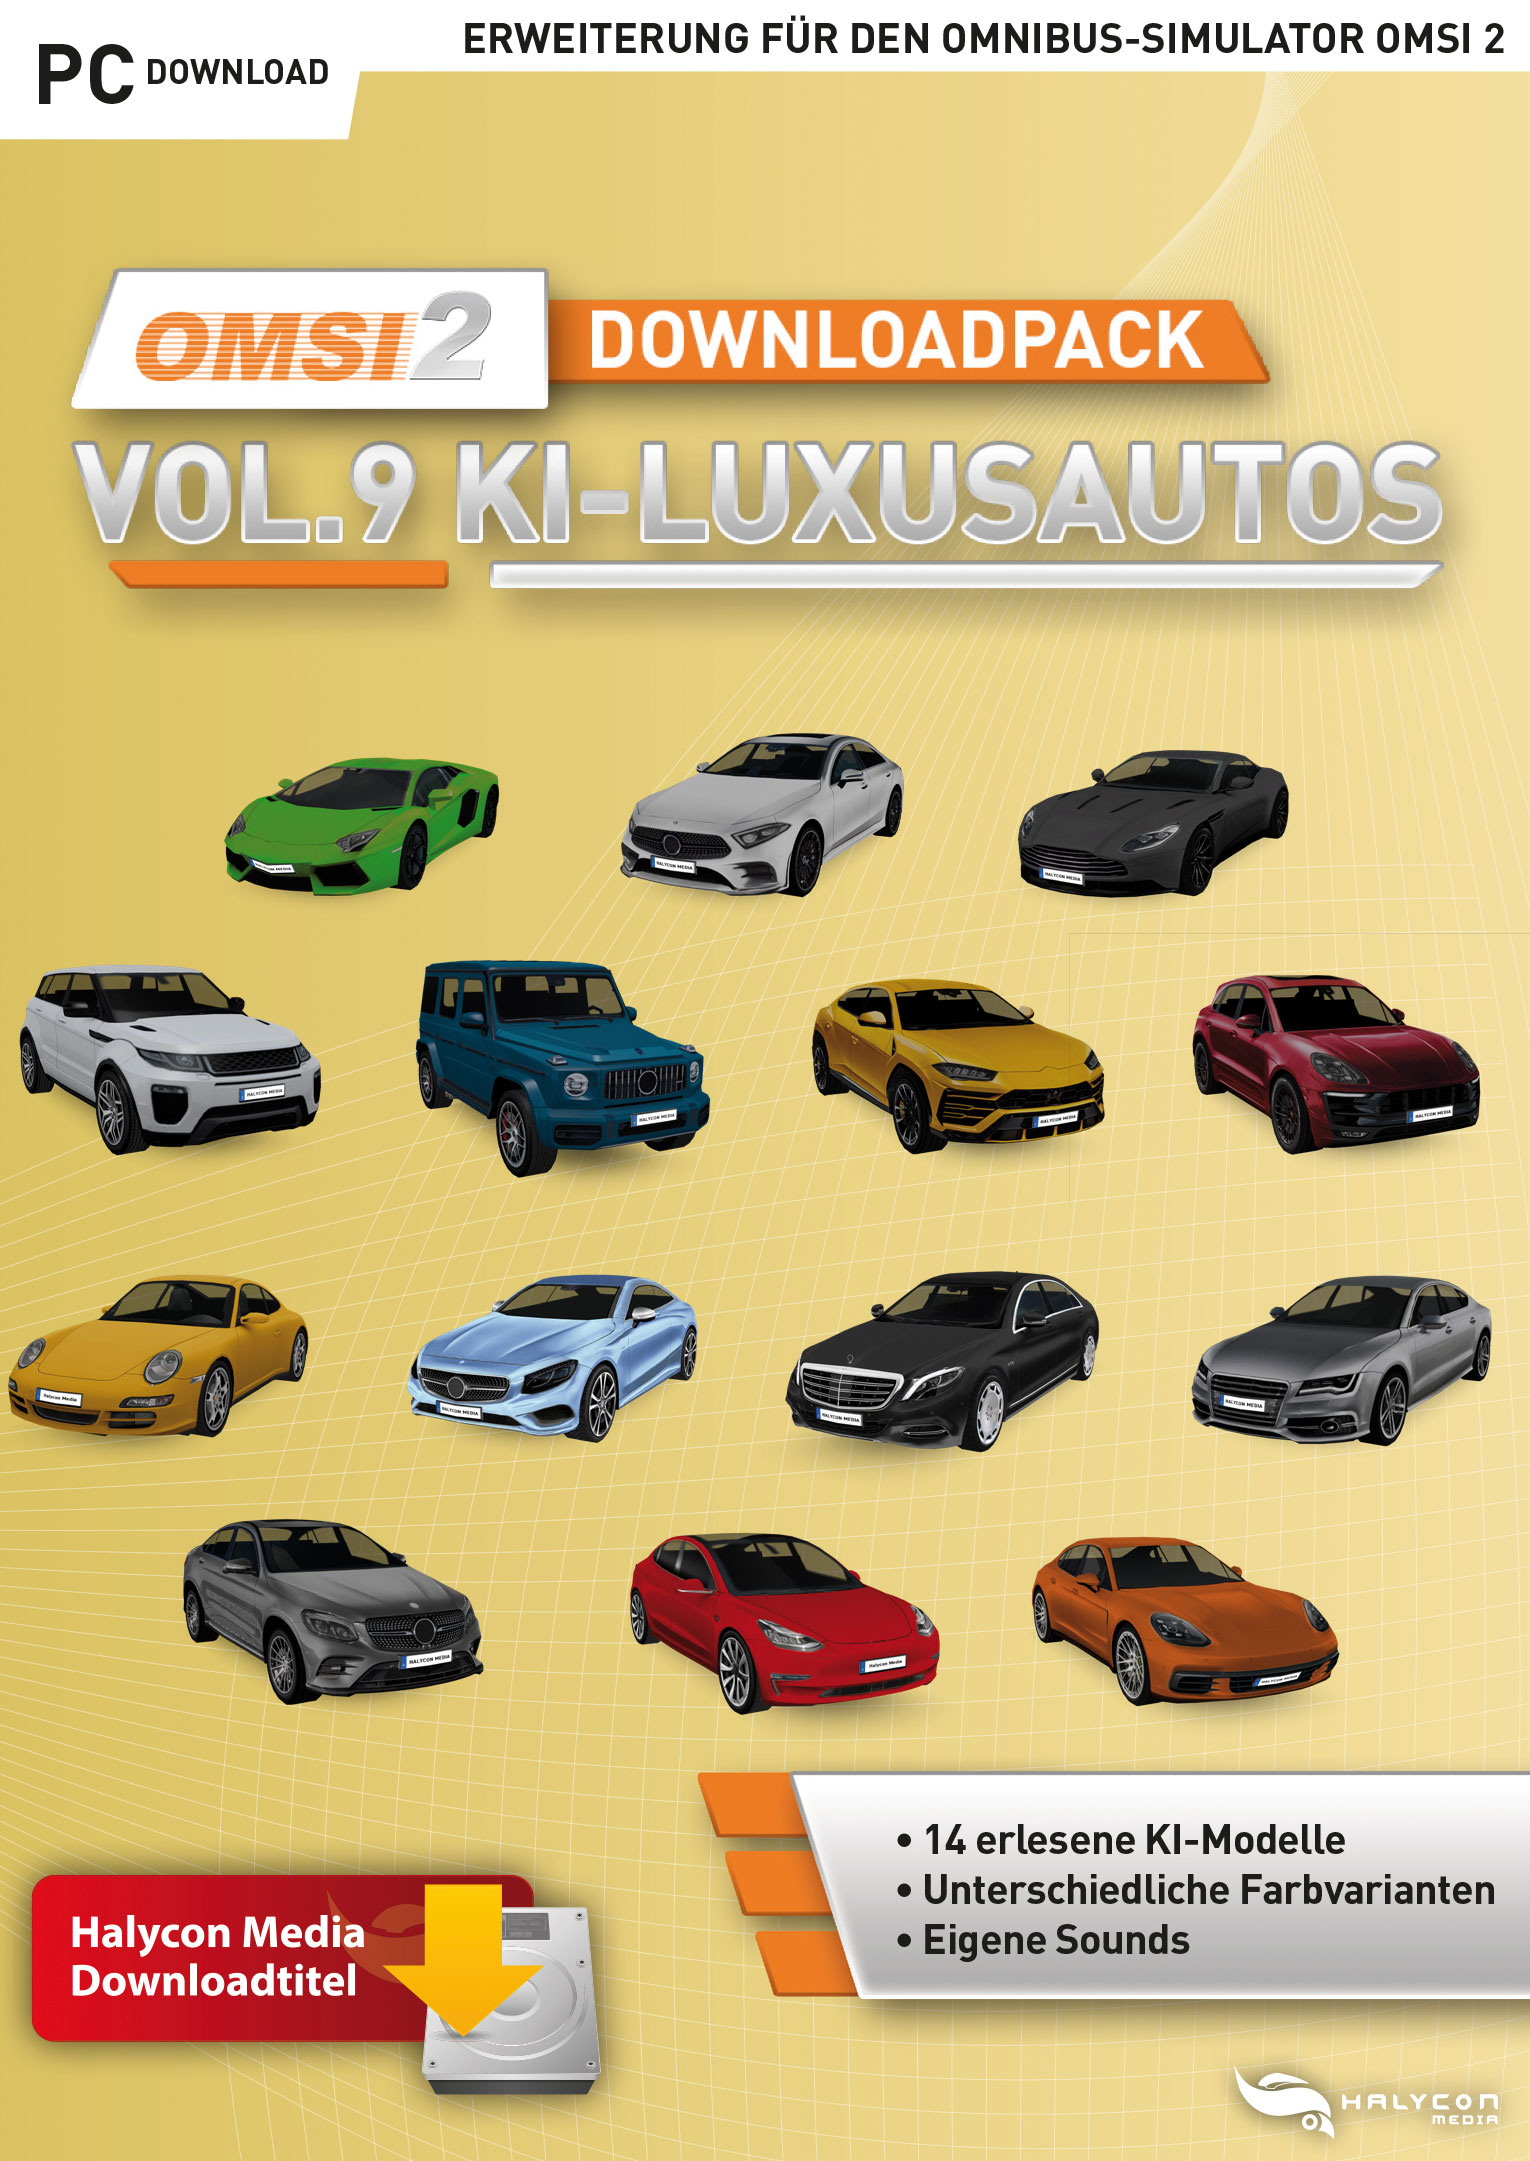 Packshot Halycon OMSI 2 Downloadpack Vol. 9 Luxury Cars